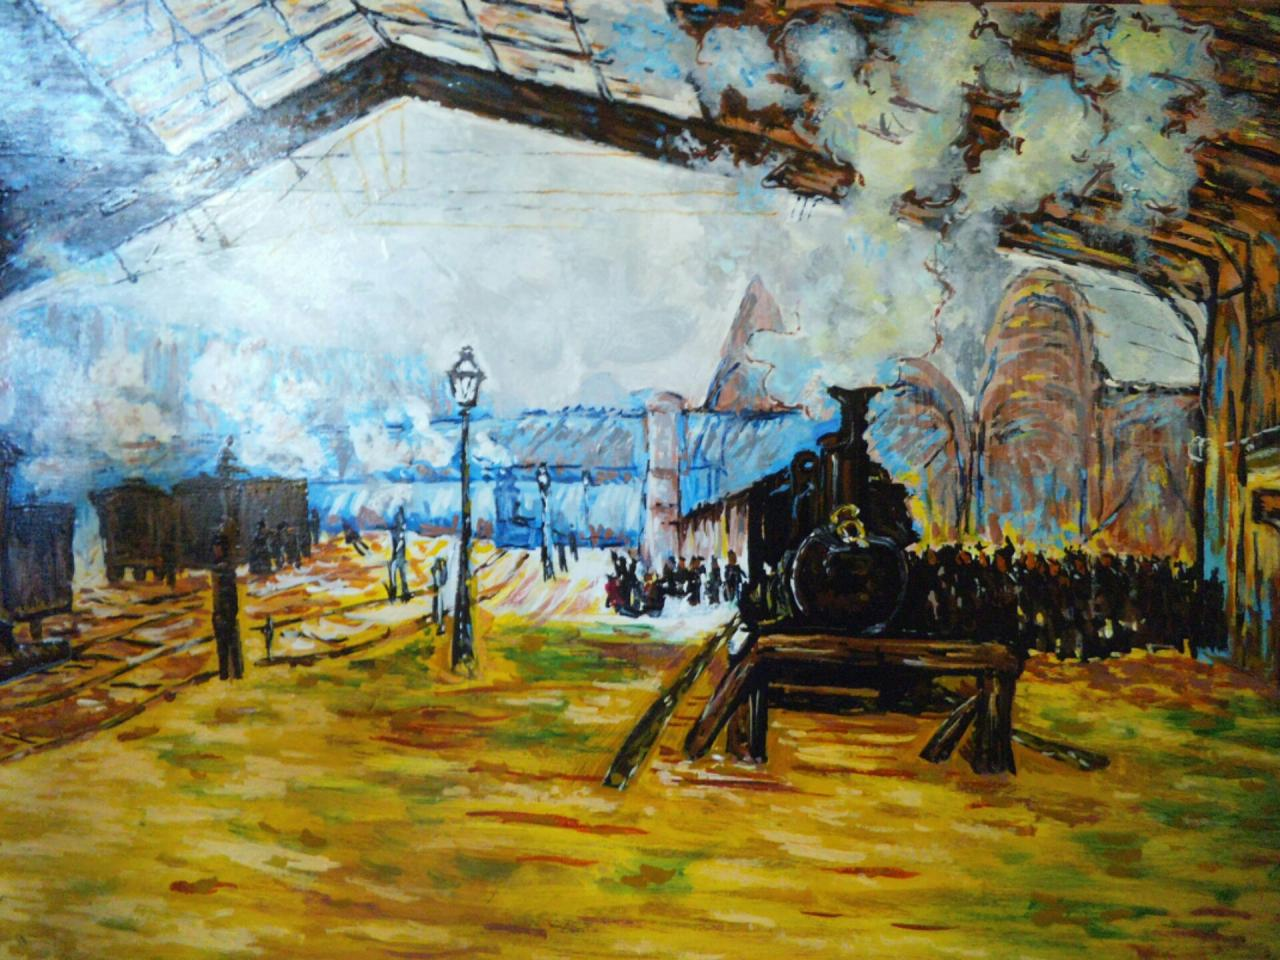 The Saint-Lazare station, the Normandy train